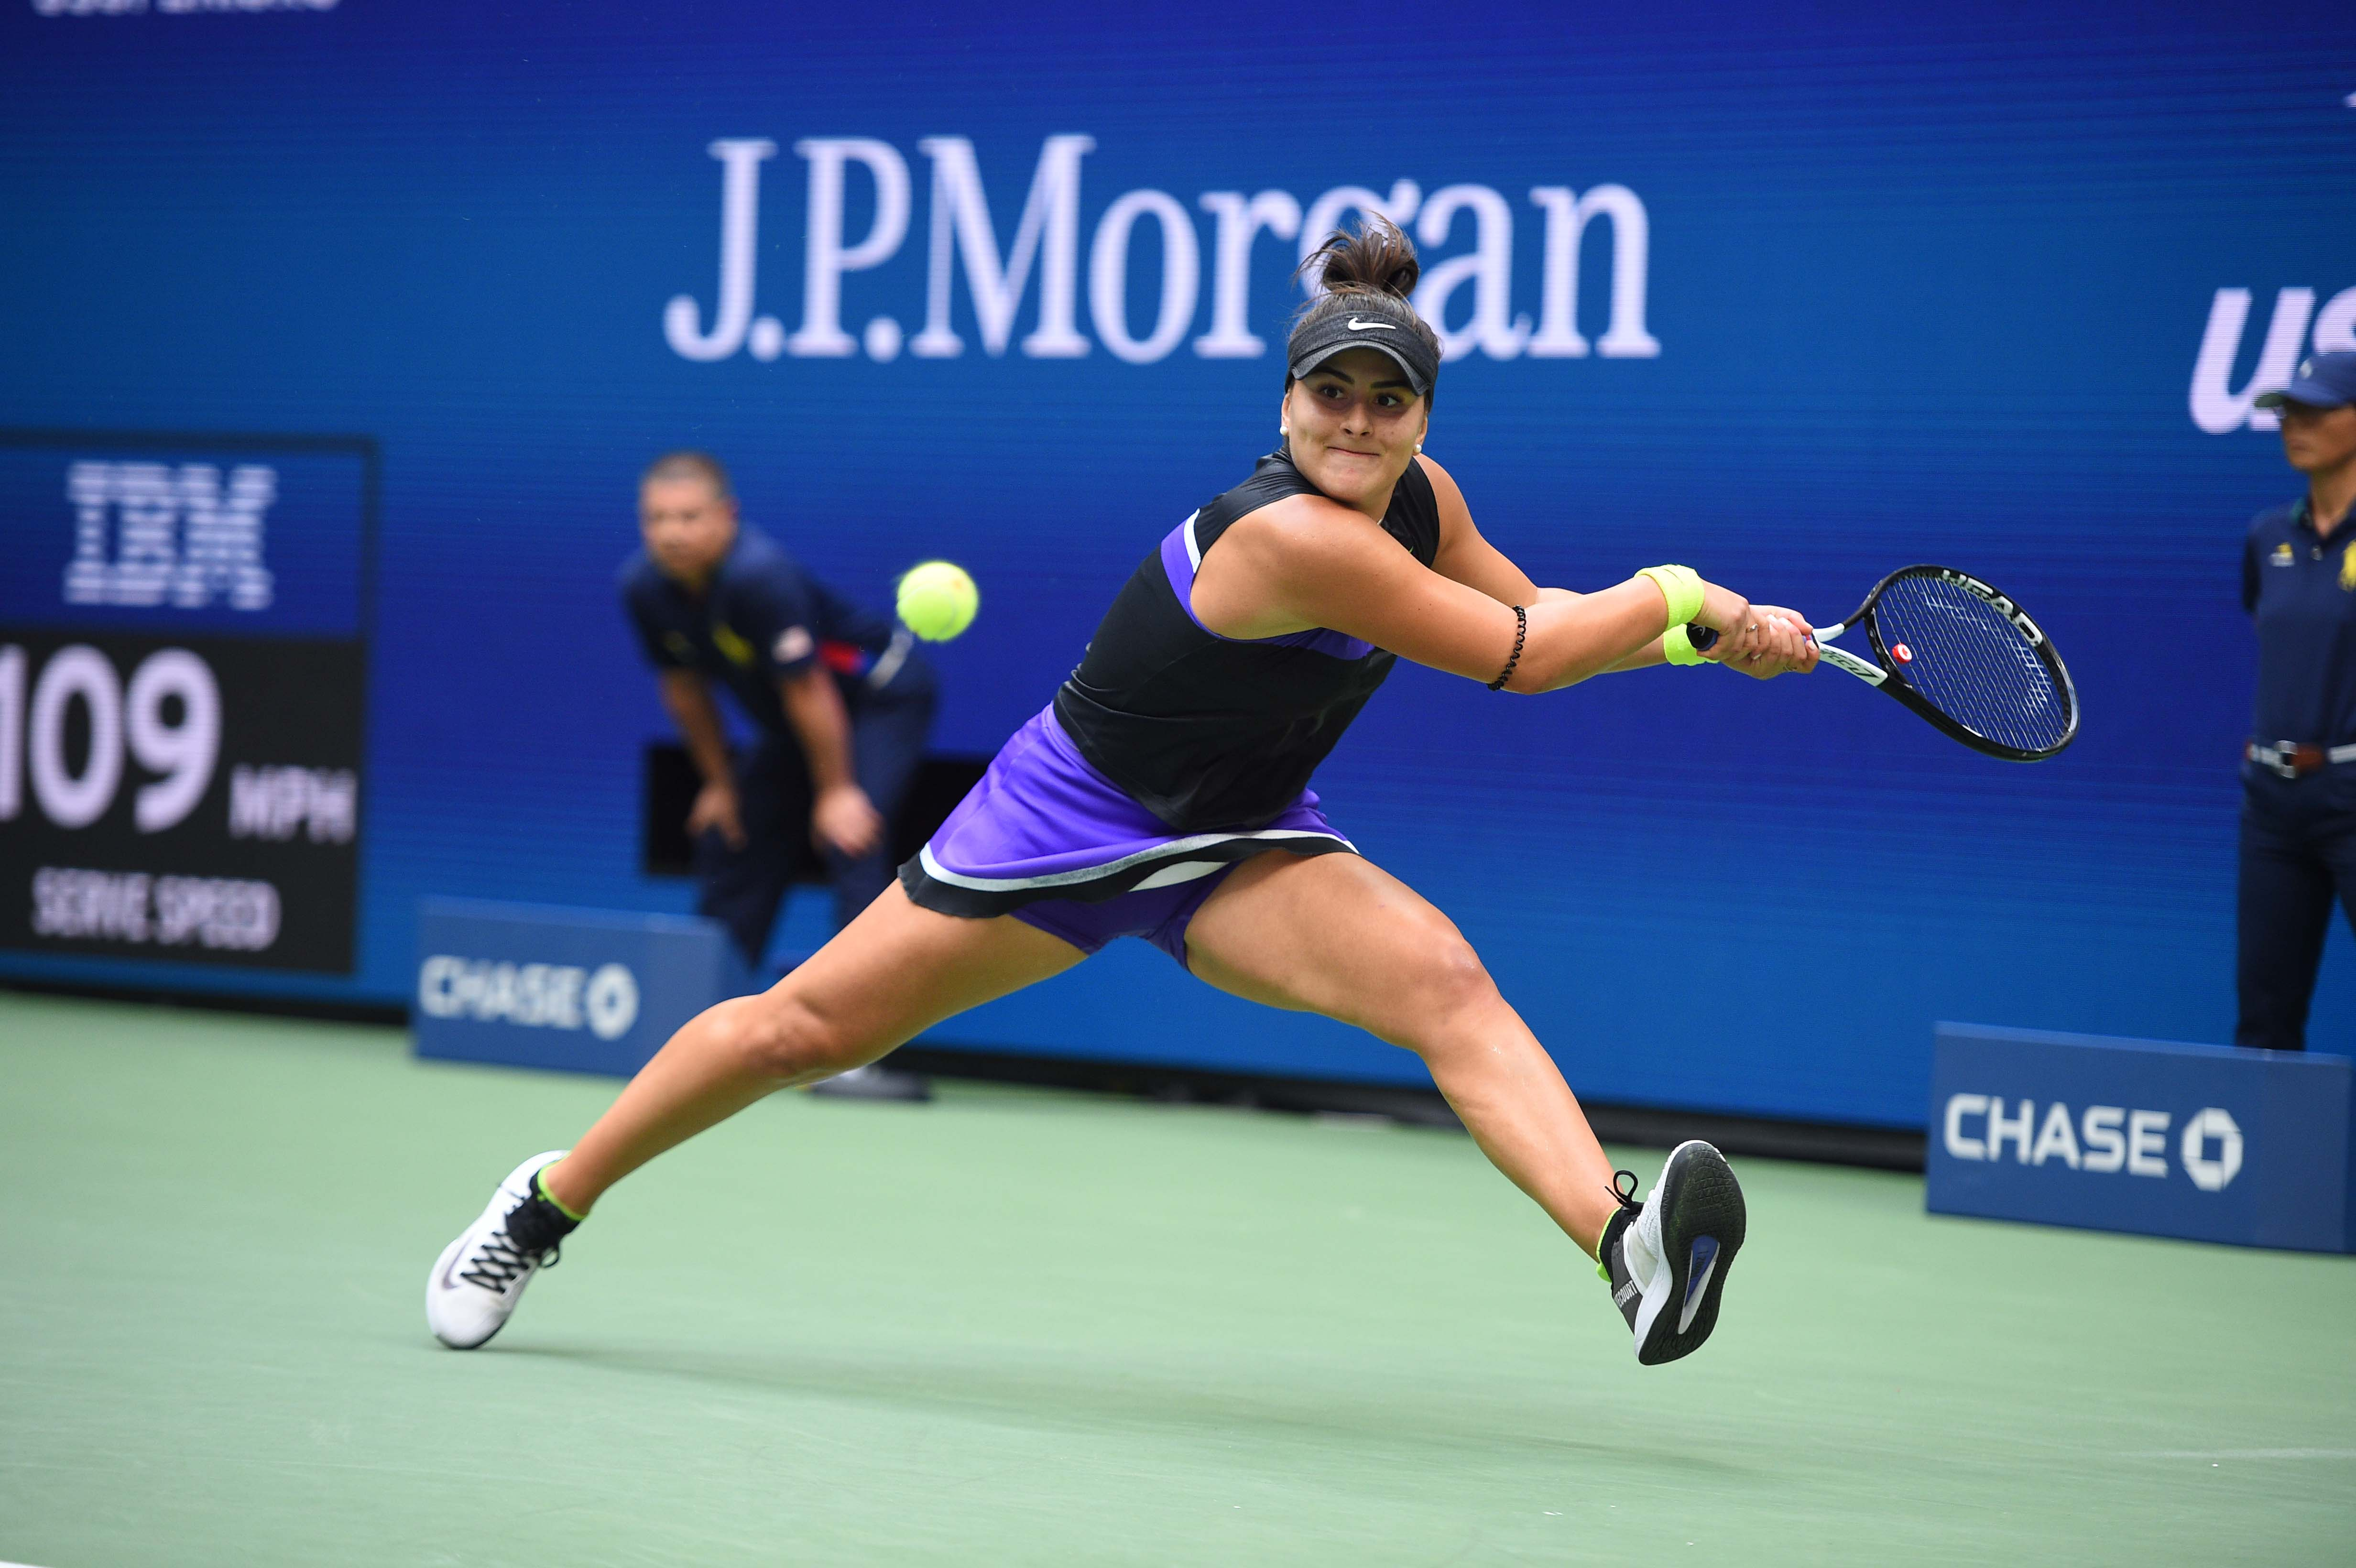 Bianca Andreescu hitting a backhand during the 2019 US Open final